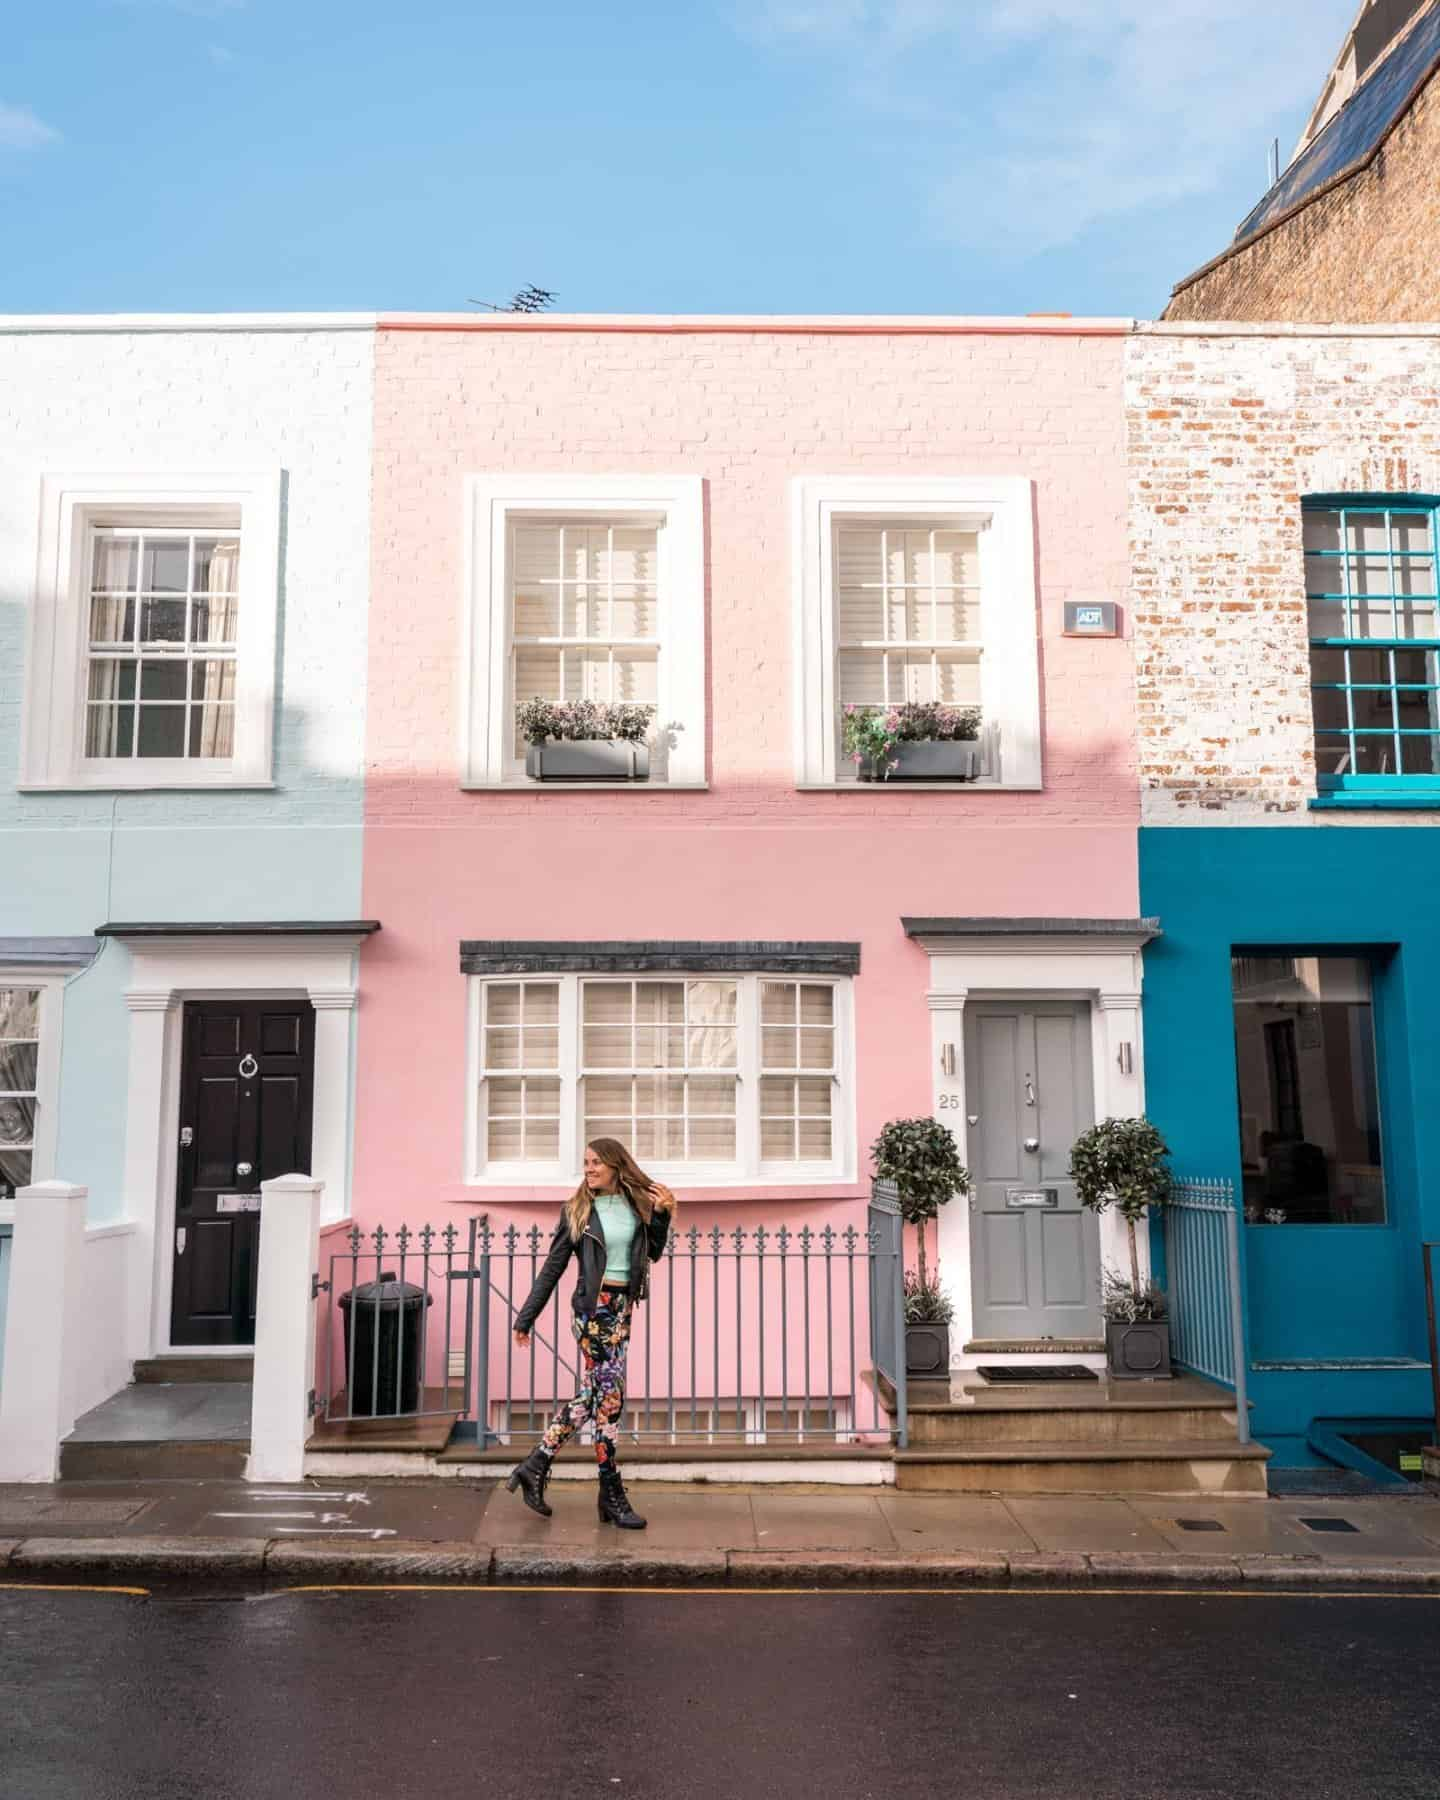 Uxbridge Street - instagrammable colorful houses in Notting Hill